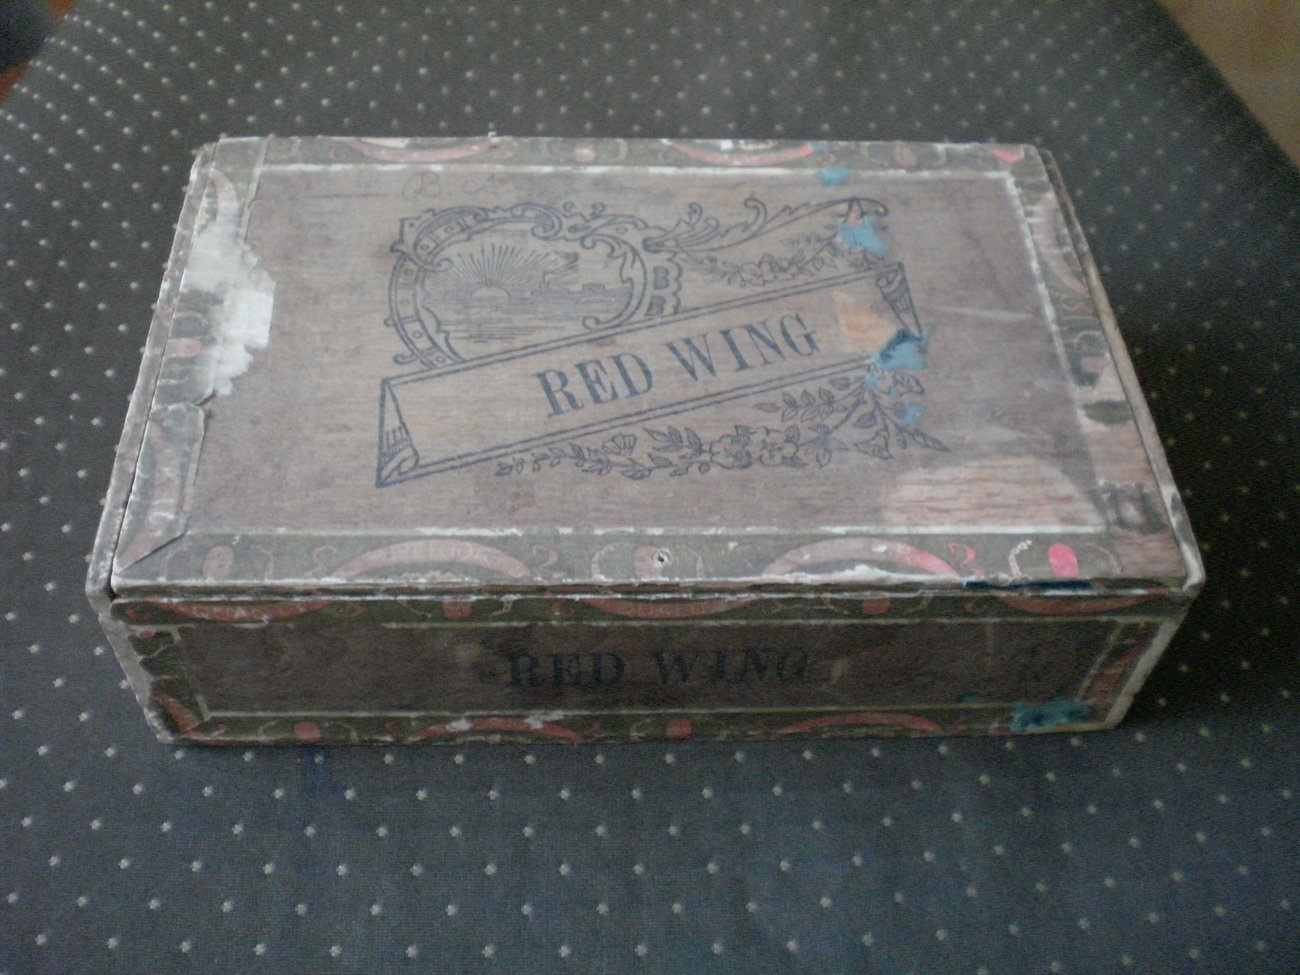 Red Wing Cigar Box Wood Factory 338 Ohio Vintage 1896